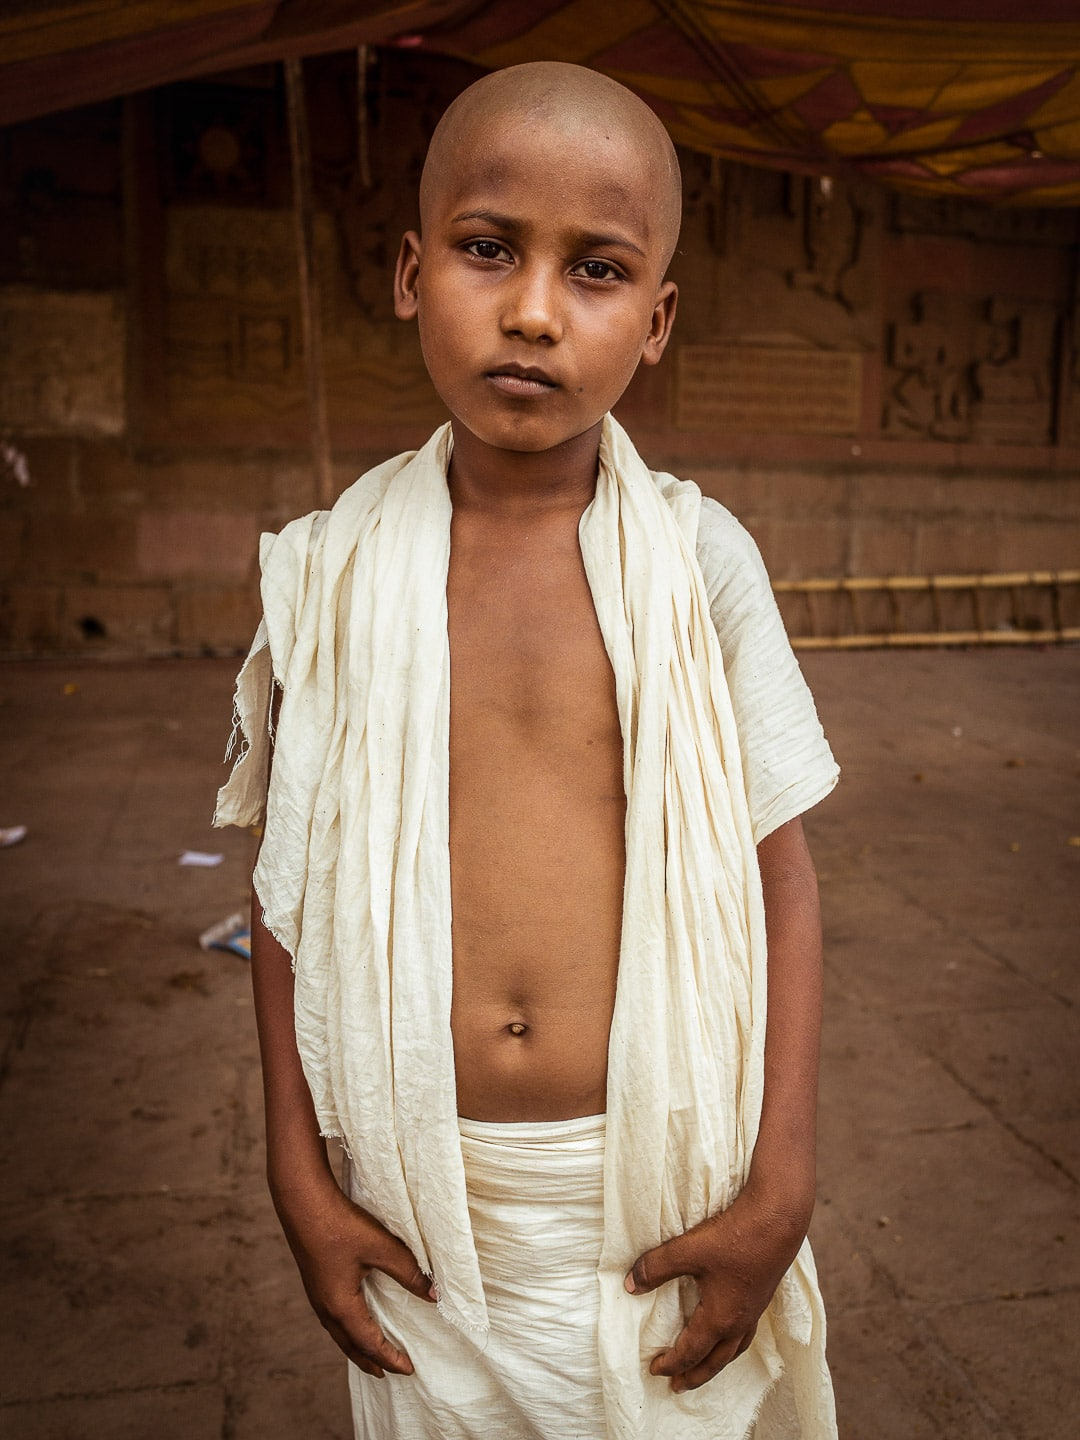 A young mourner in white clothing near the Varanasi ghats